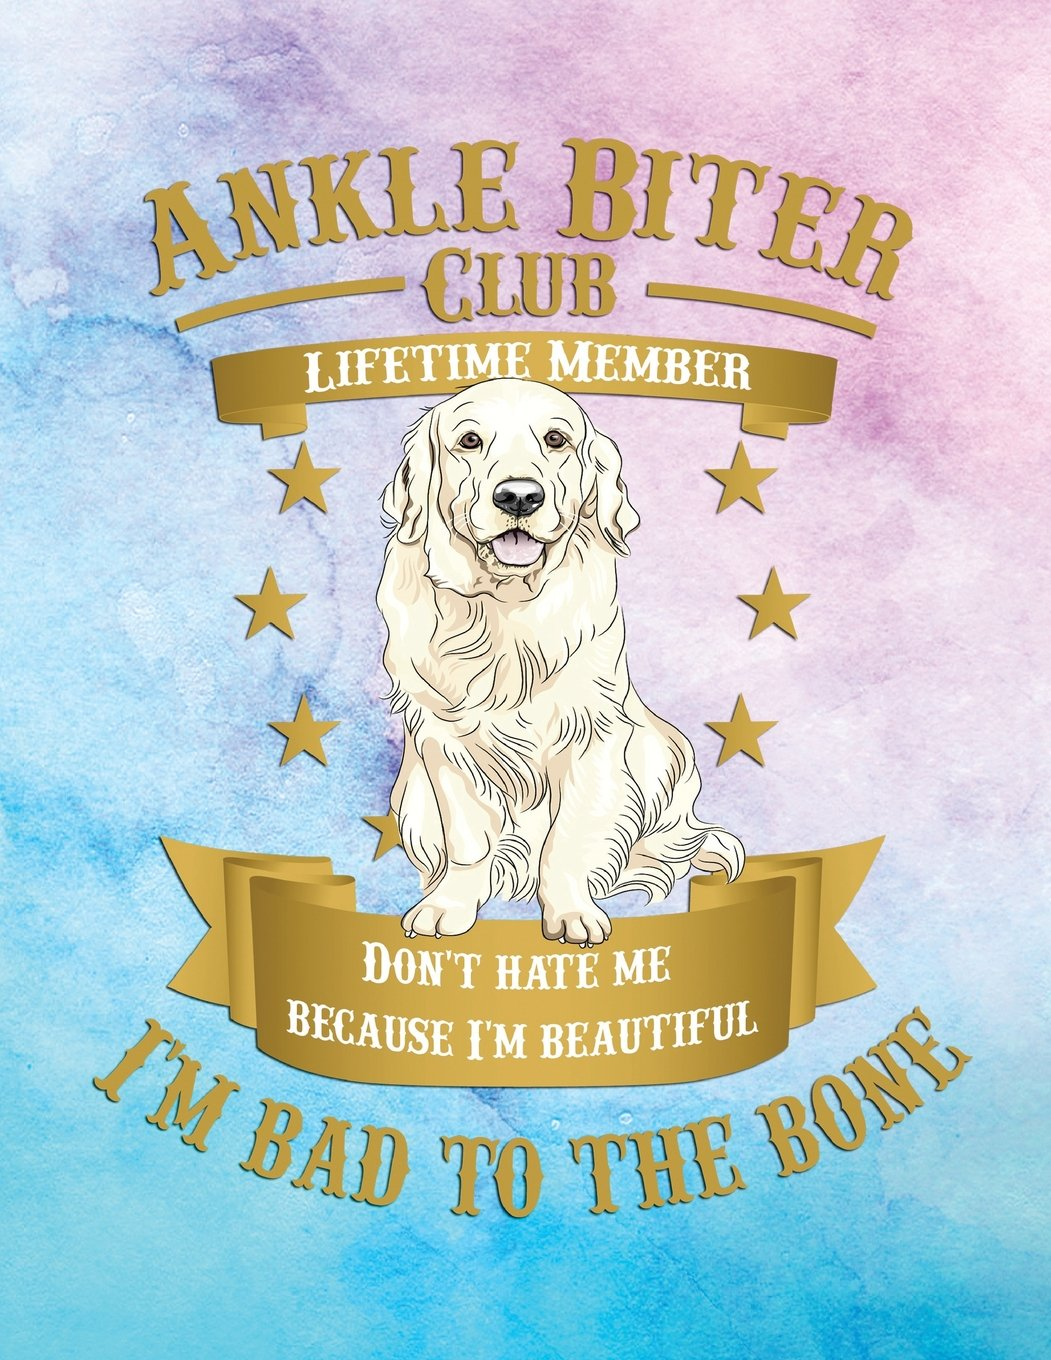 Ankle Biter Club Lifetime Member: Don't Hate Me Because I'm Beautiful, I'm Bad to the Bone - Golden Retriever pdf